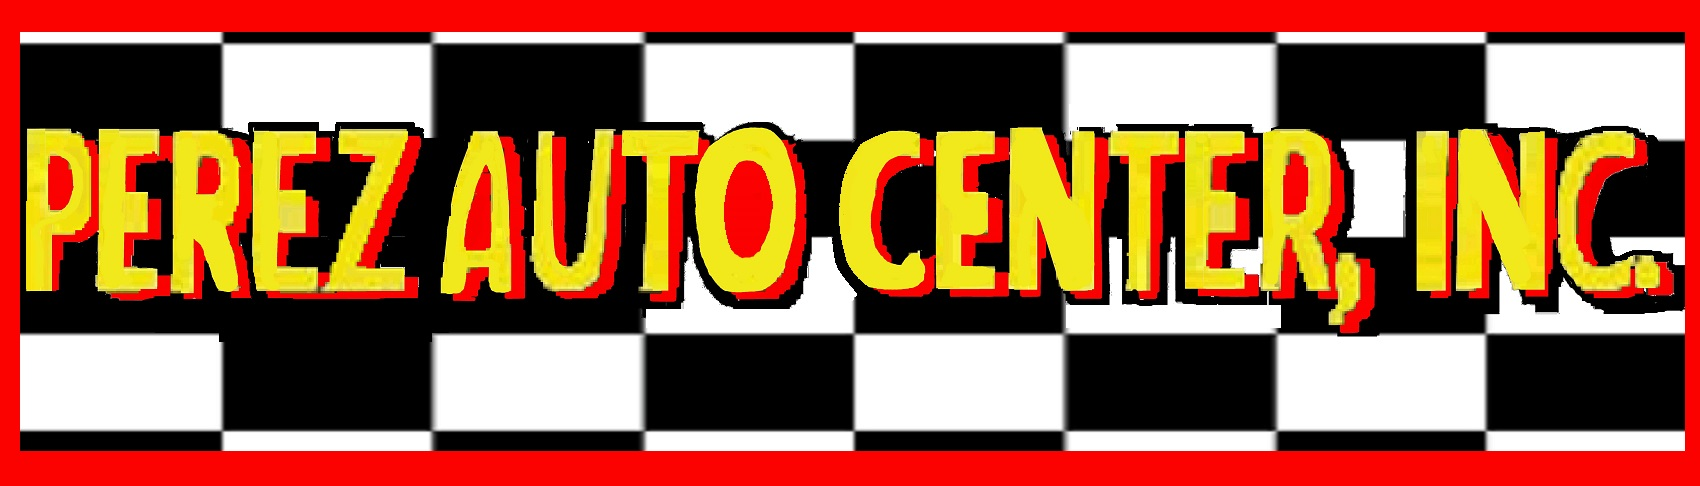 Perez Auto Center Inc